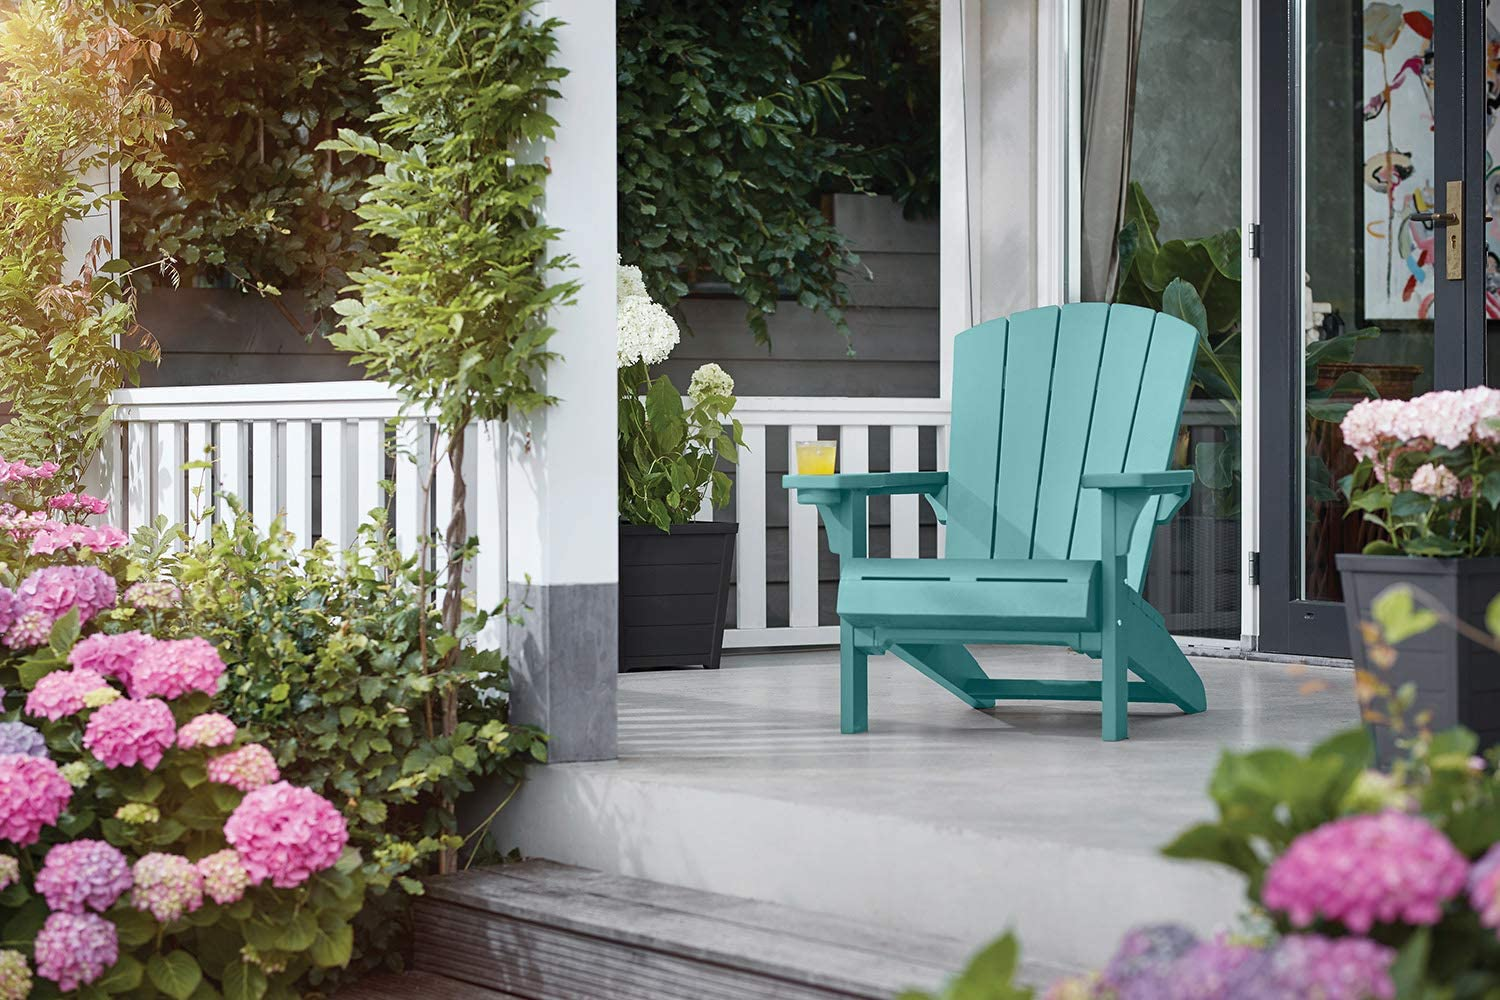 KETER Alpine Adirondack Resin Outdoor Furniture Patio Chairs with Cup Holder-Perfect for Beach, Pool, and Fire Pit Seating, Teal : Garden & Outdoor